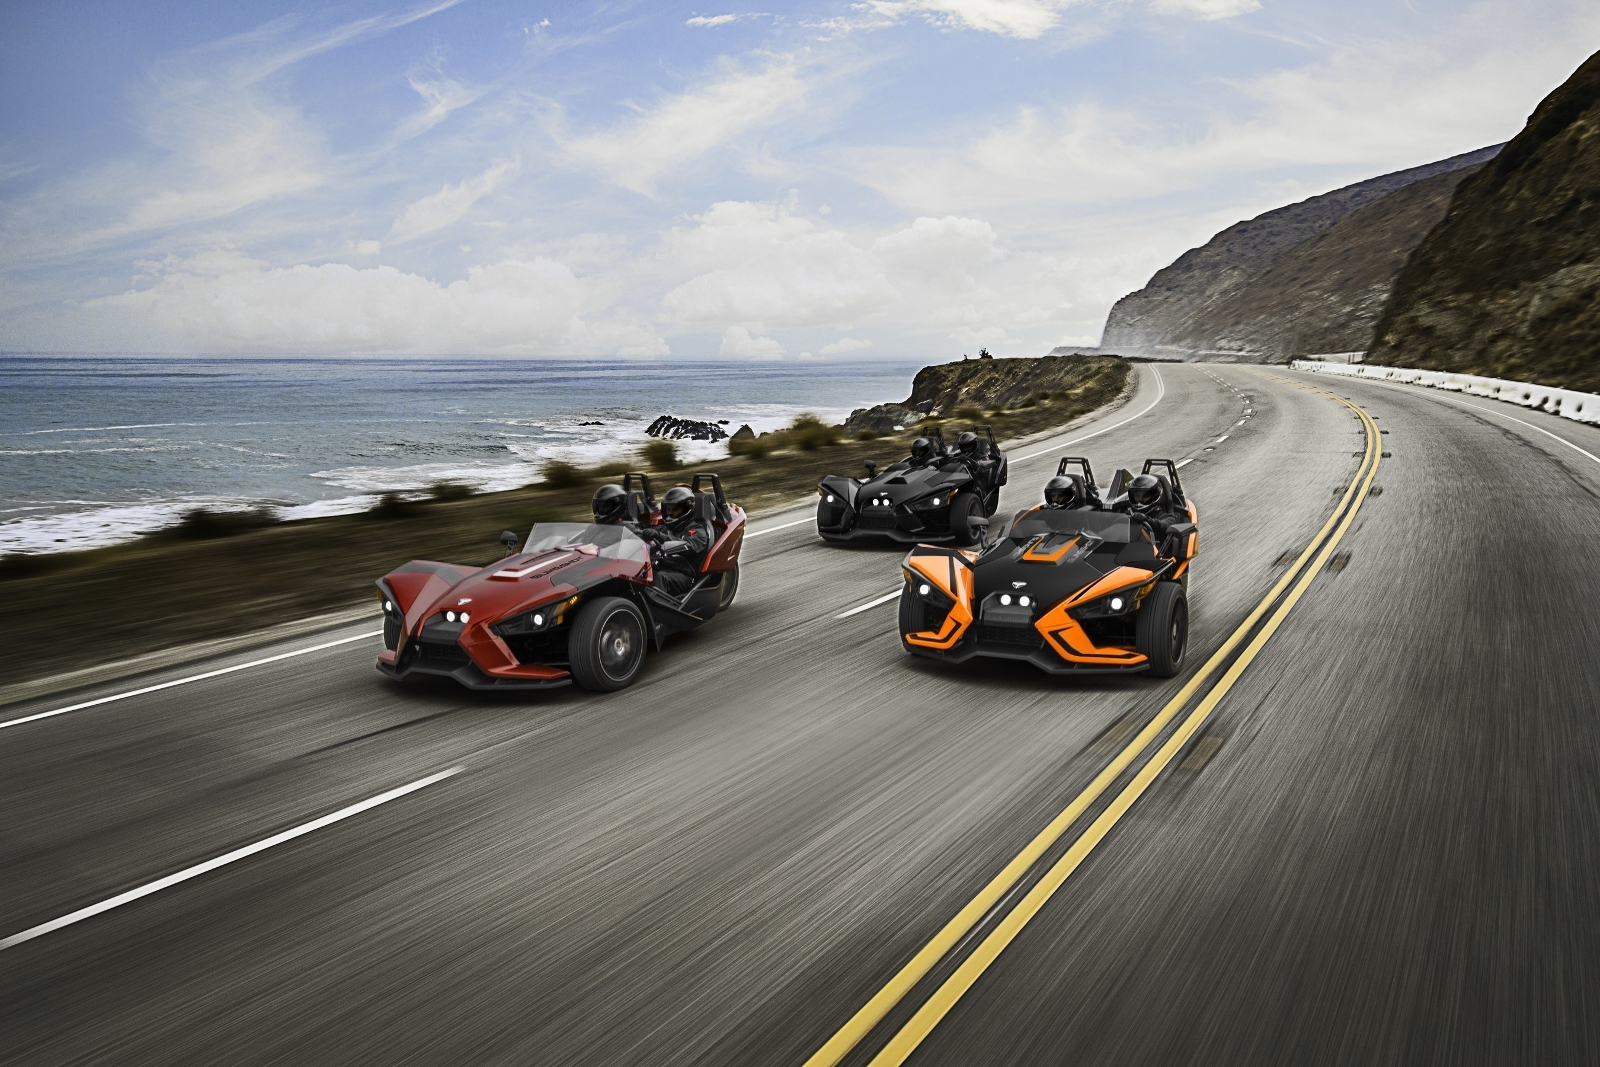 Polaris Updates Slingshot Range For 2017 And Adds Hardtop